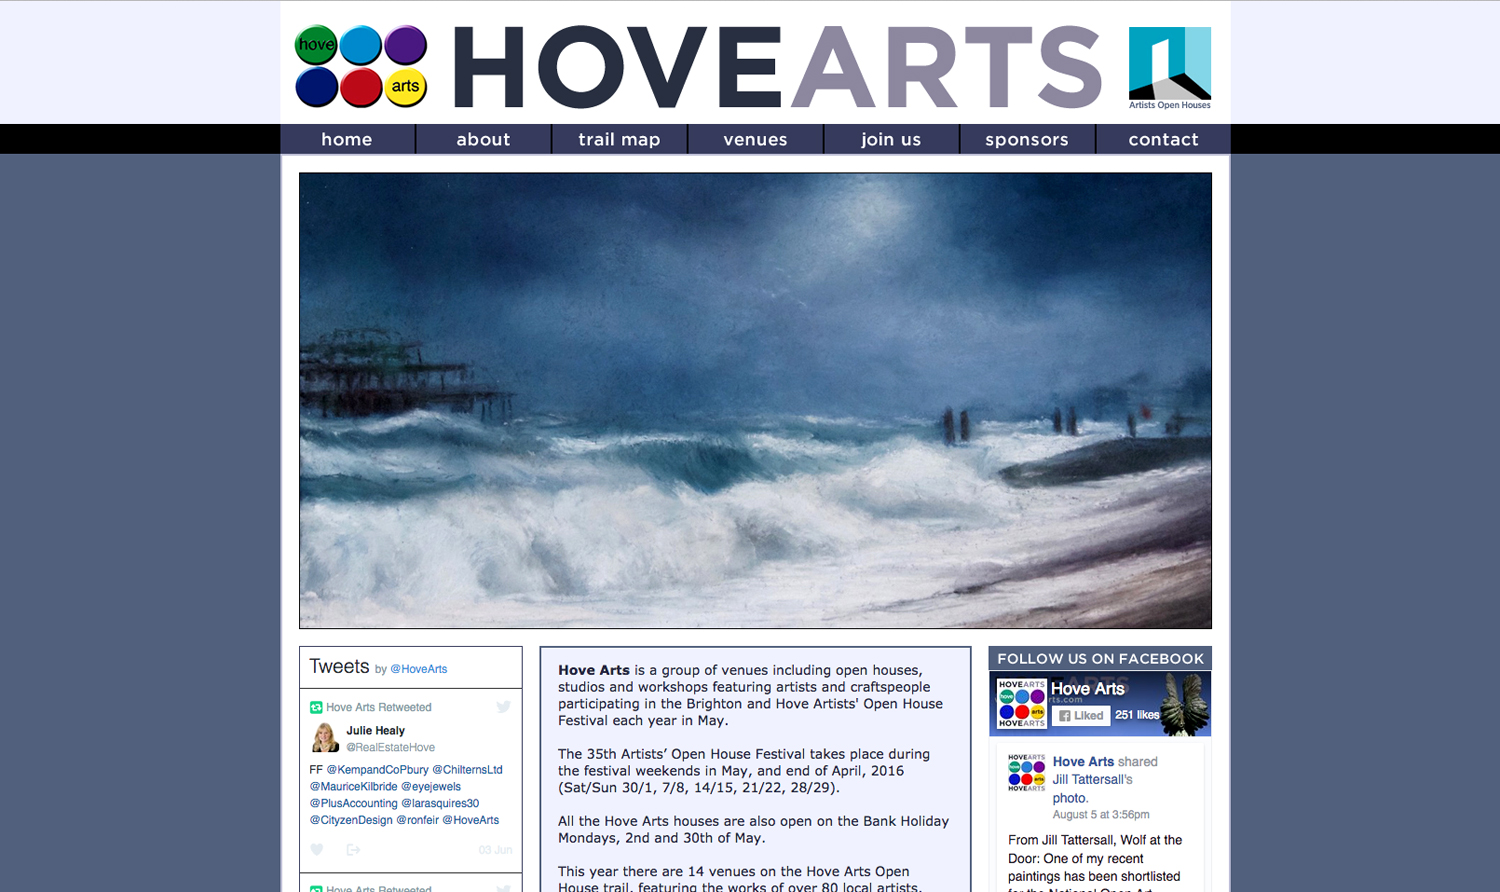 Hove Arts website designed by Hook Web & Print